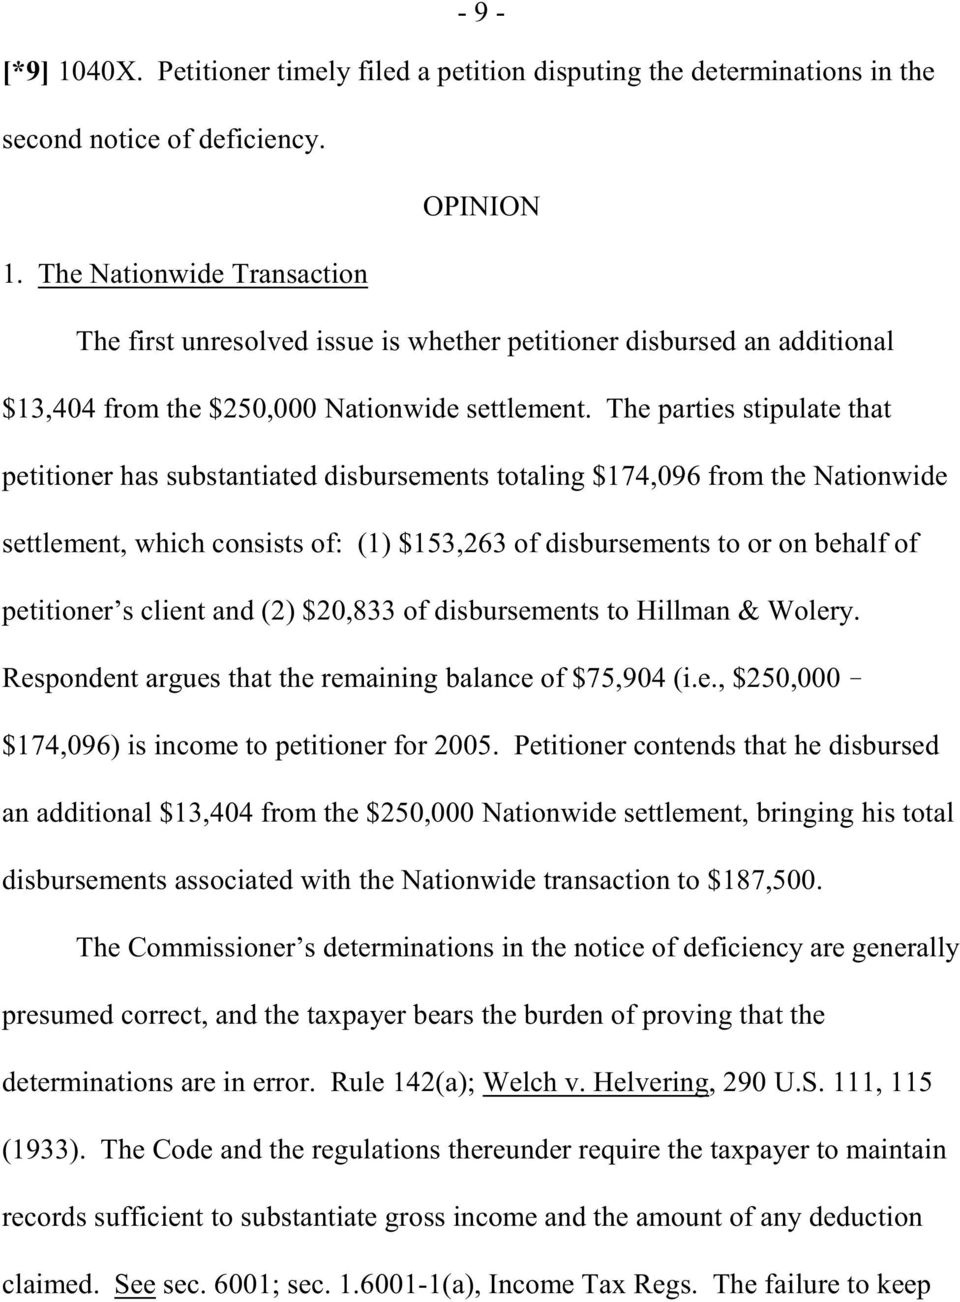 The parties stipulate that petitioner has substantiated disbursements totaling $174,096 from the Nationwide settlement, which consists of: (1) $153,263 of disbursements to or on behalf of petitioner